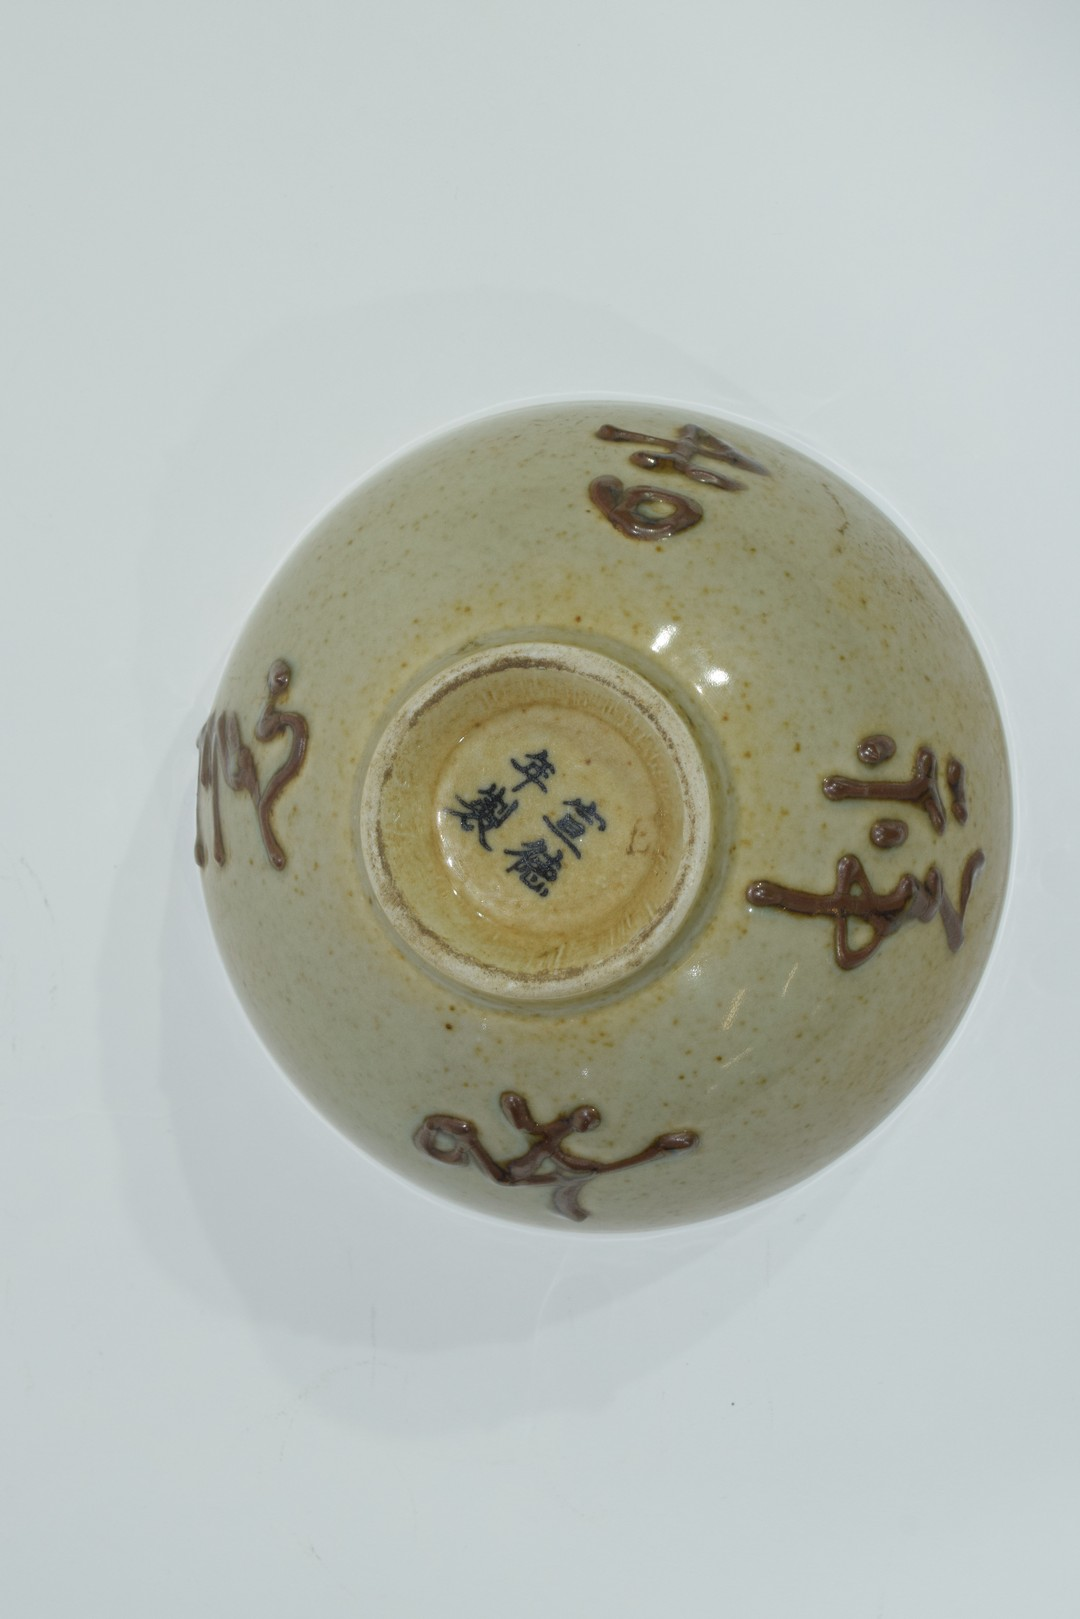 19th century Chinese porcelain bowl - Image 17 of 17